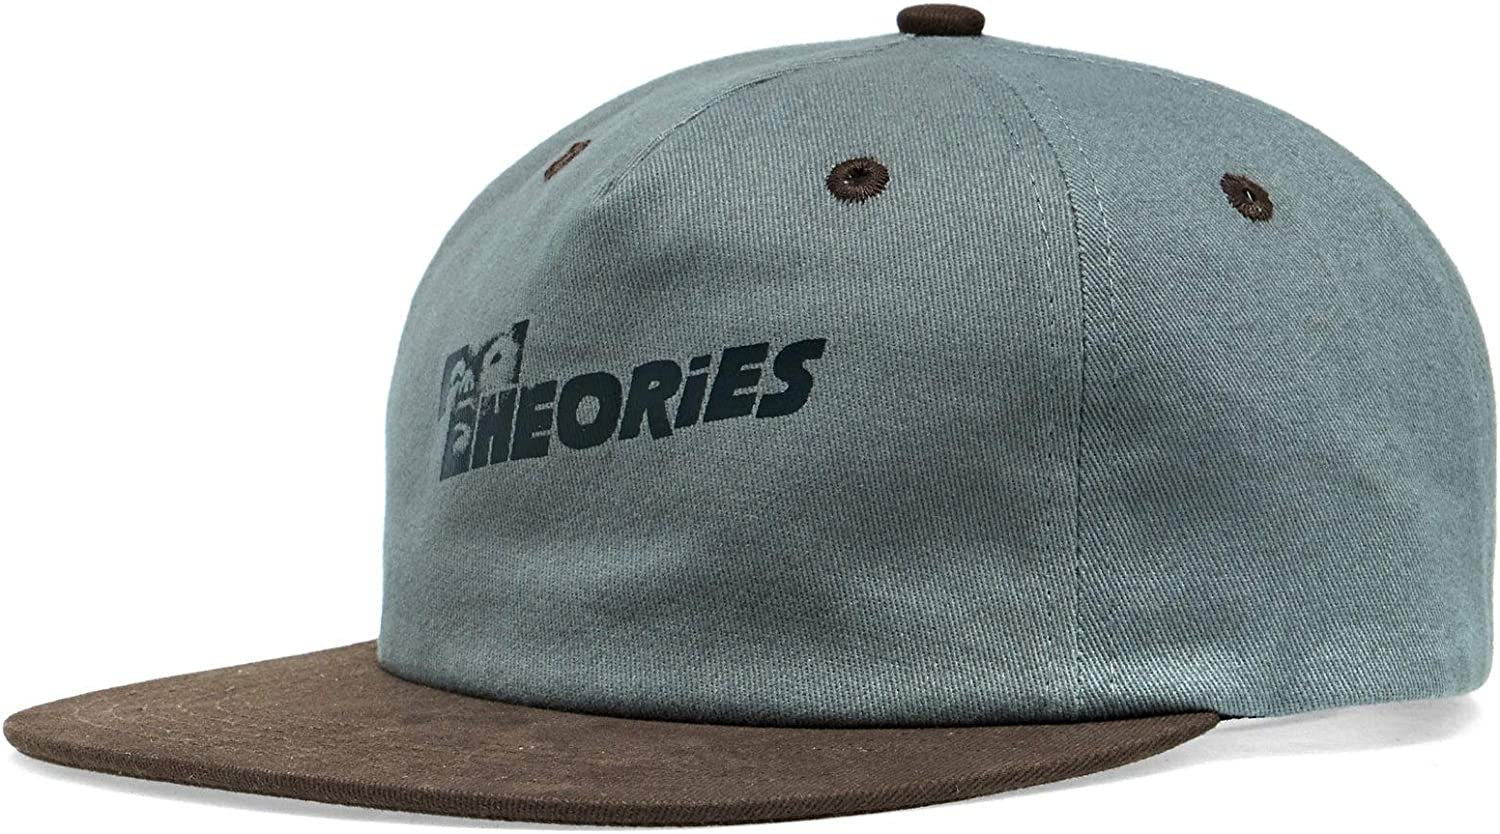 Theories Of Atlantis Overlook Gorra Gris Gris / Marrón Taille ...